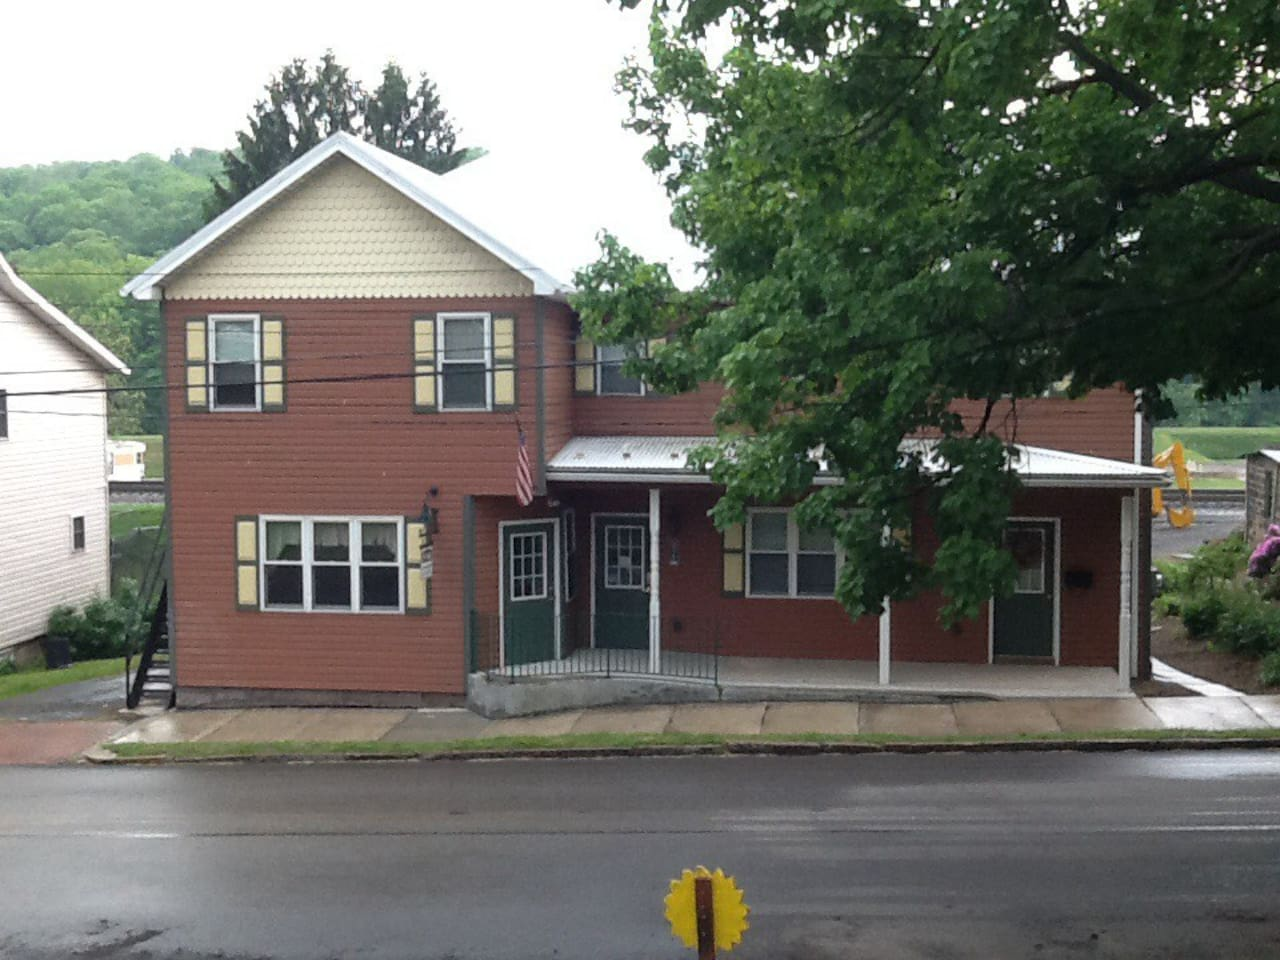 We're located at 506 Main Street in Rockwood PA